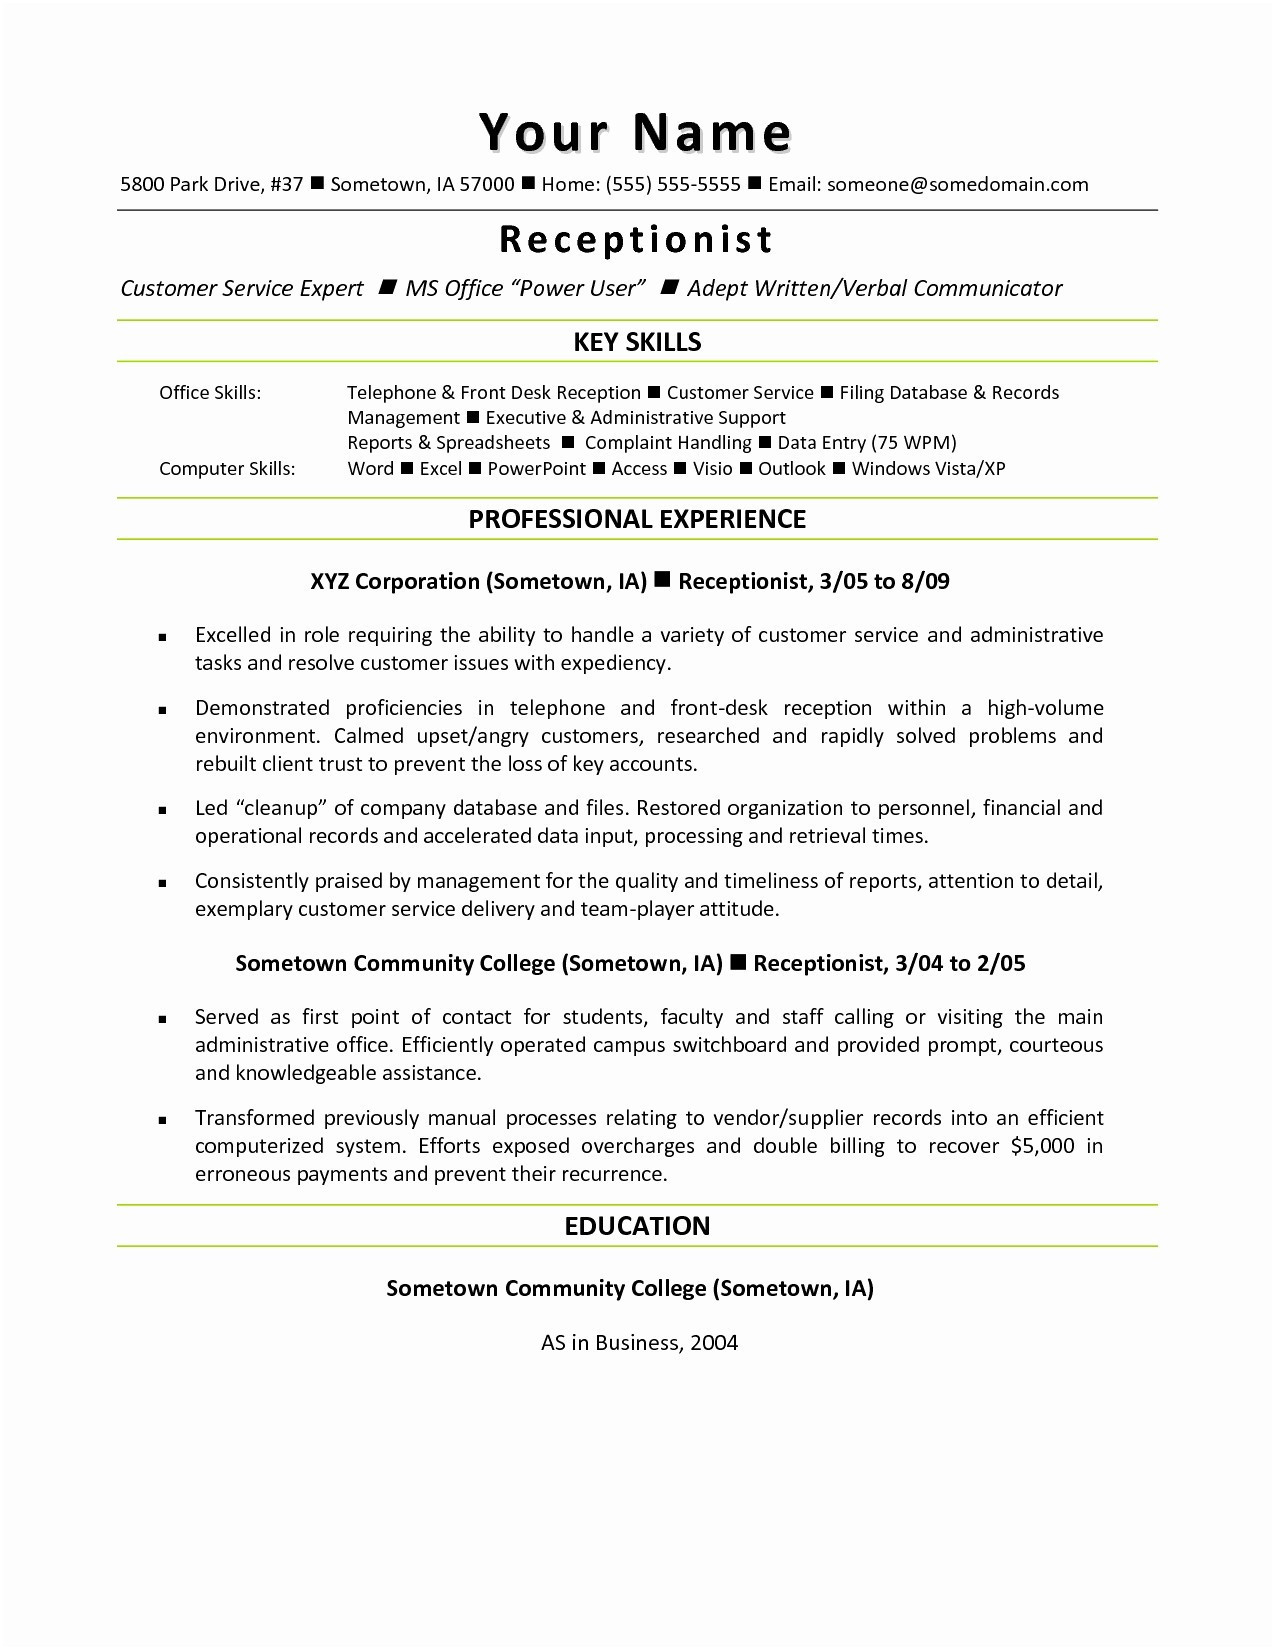 Free Template for A Cover Letter for A Resume - Professional Resumes Templates Free Reference Resume Mail format